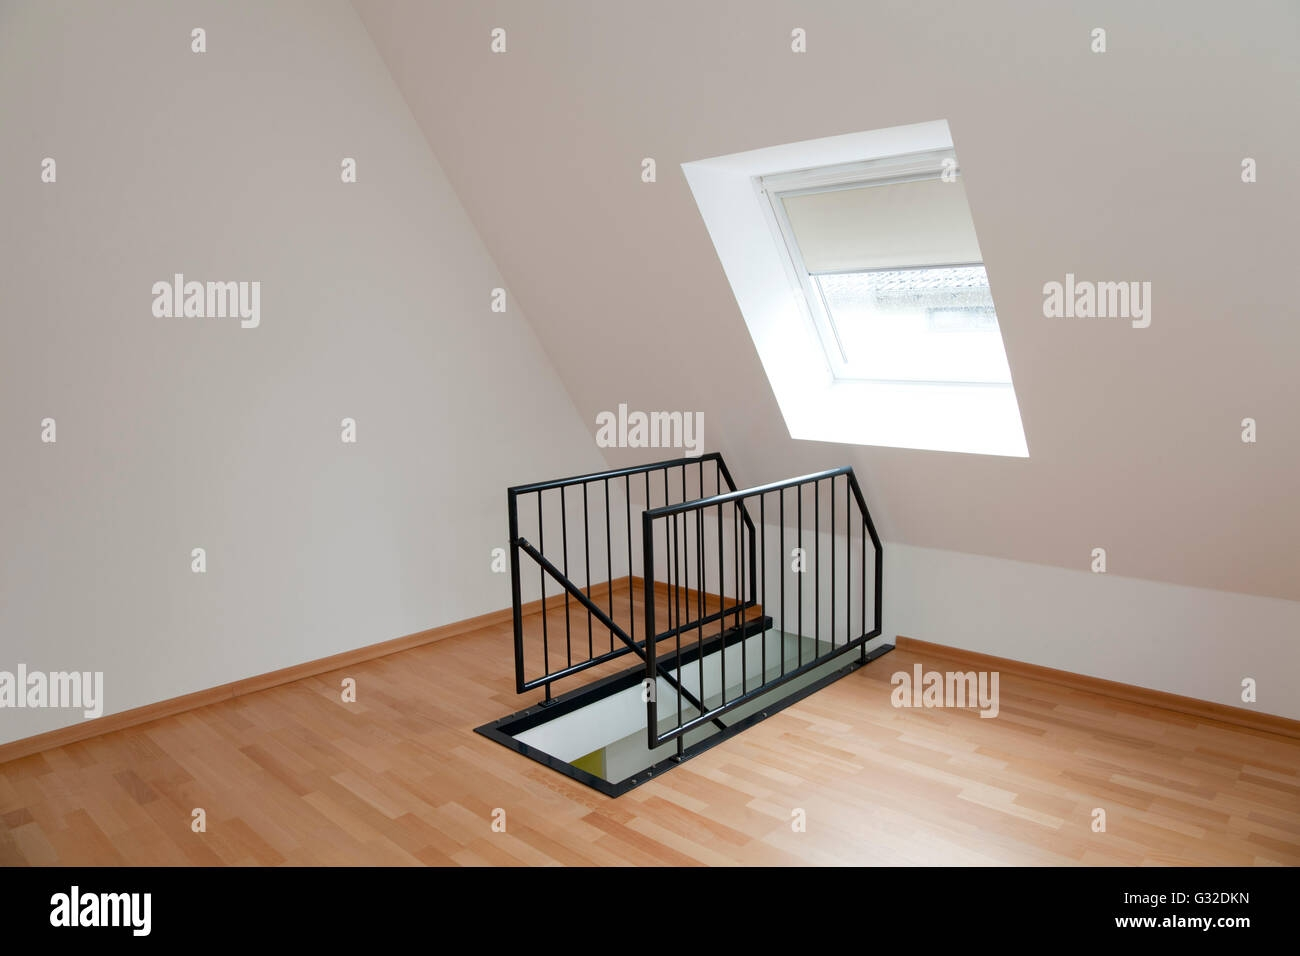 Empty Room In The Top Floor With A Staircase Railing Stock Photo   Top Of Stairs Railing   Redo   Loft   Beautiful Staircase   Solid Wood   Handrail